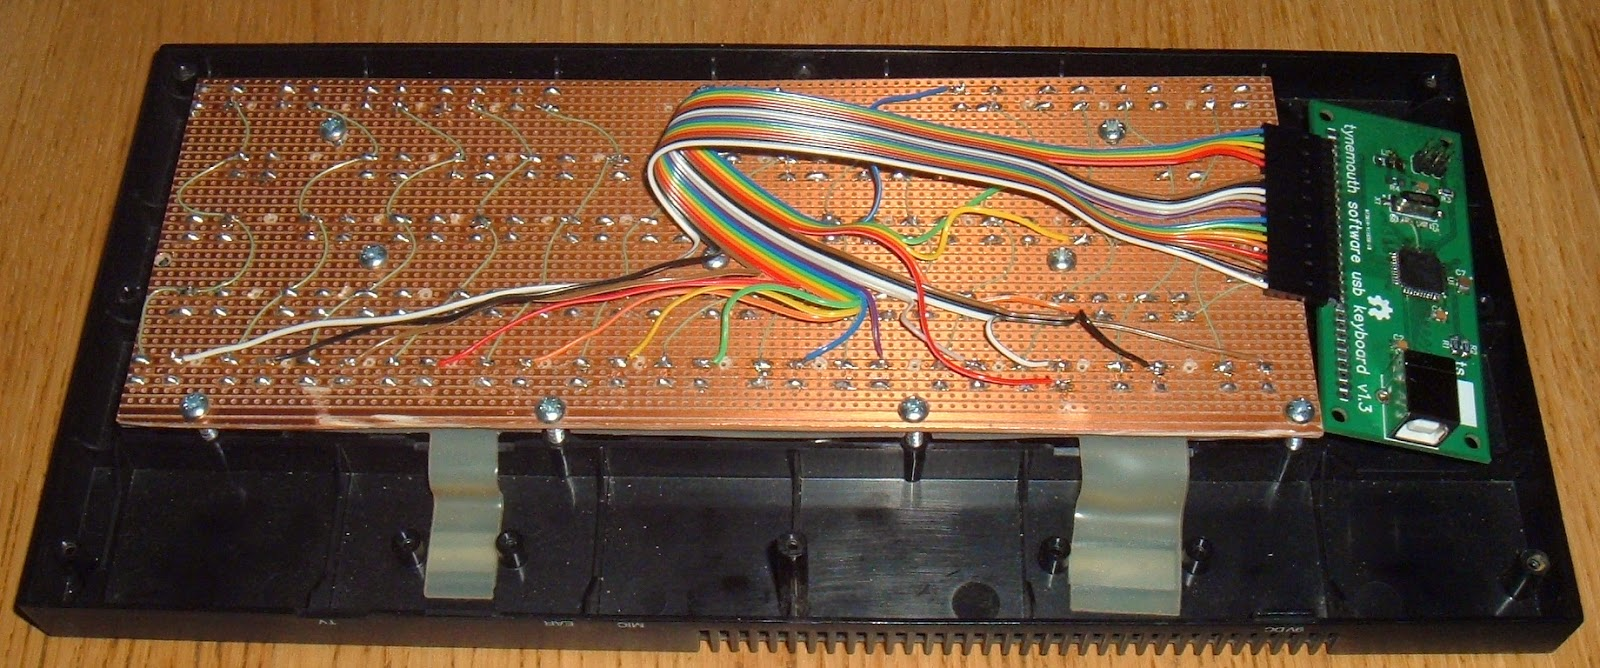 Tynemouth Software August 2014 Tact Switch Wiring I Installed The 58 Switches As Close Could To Positions Of Holes